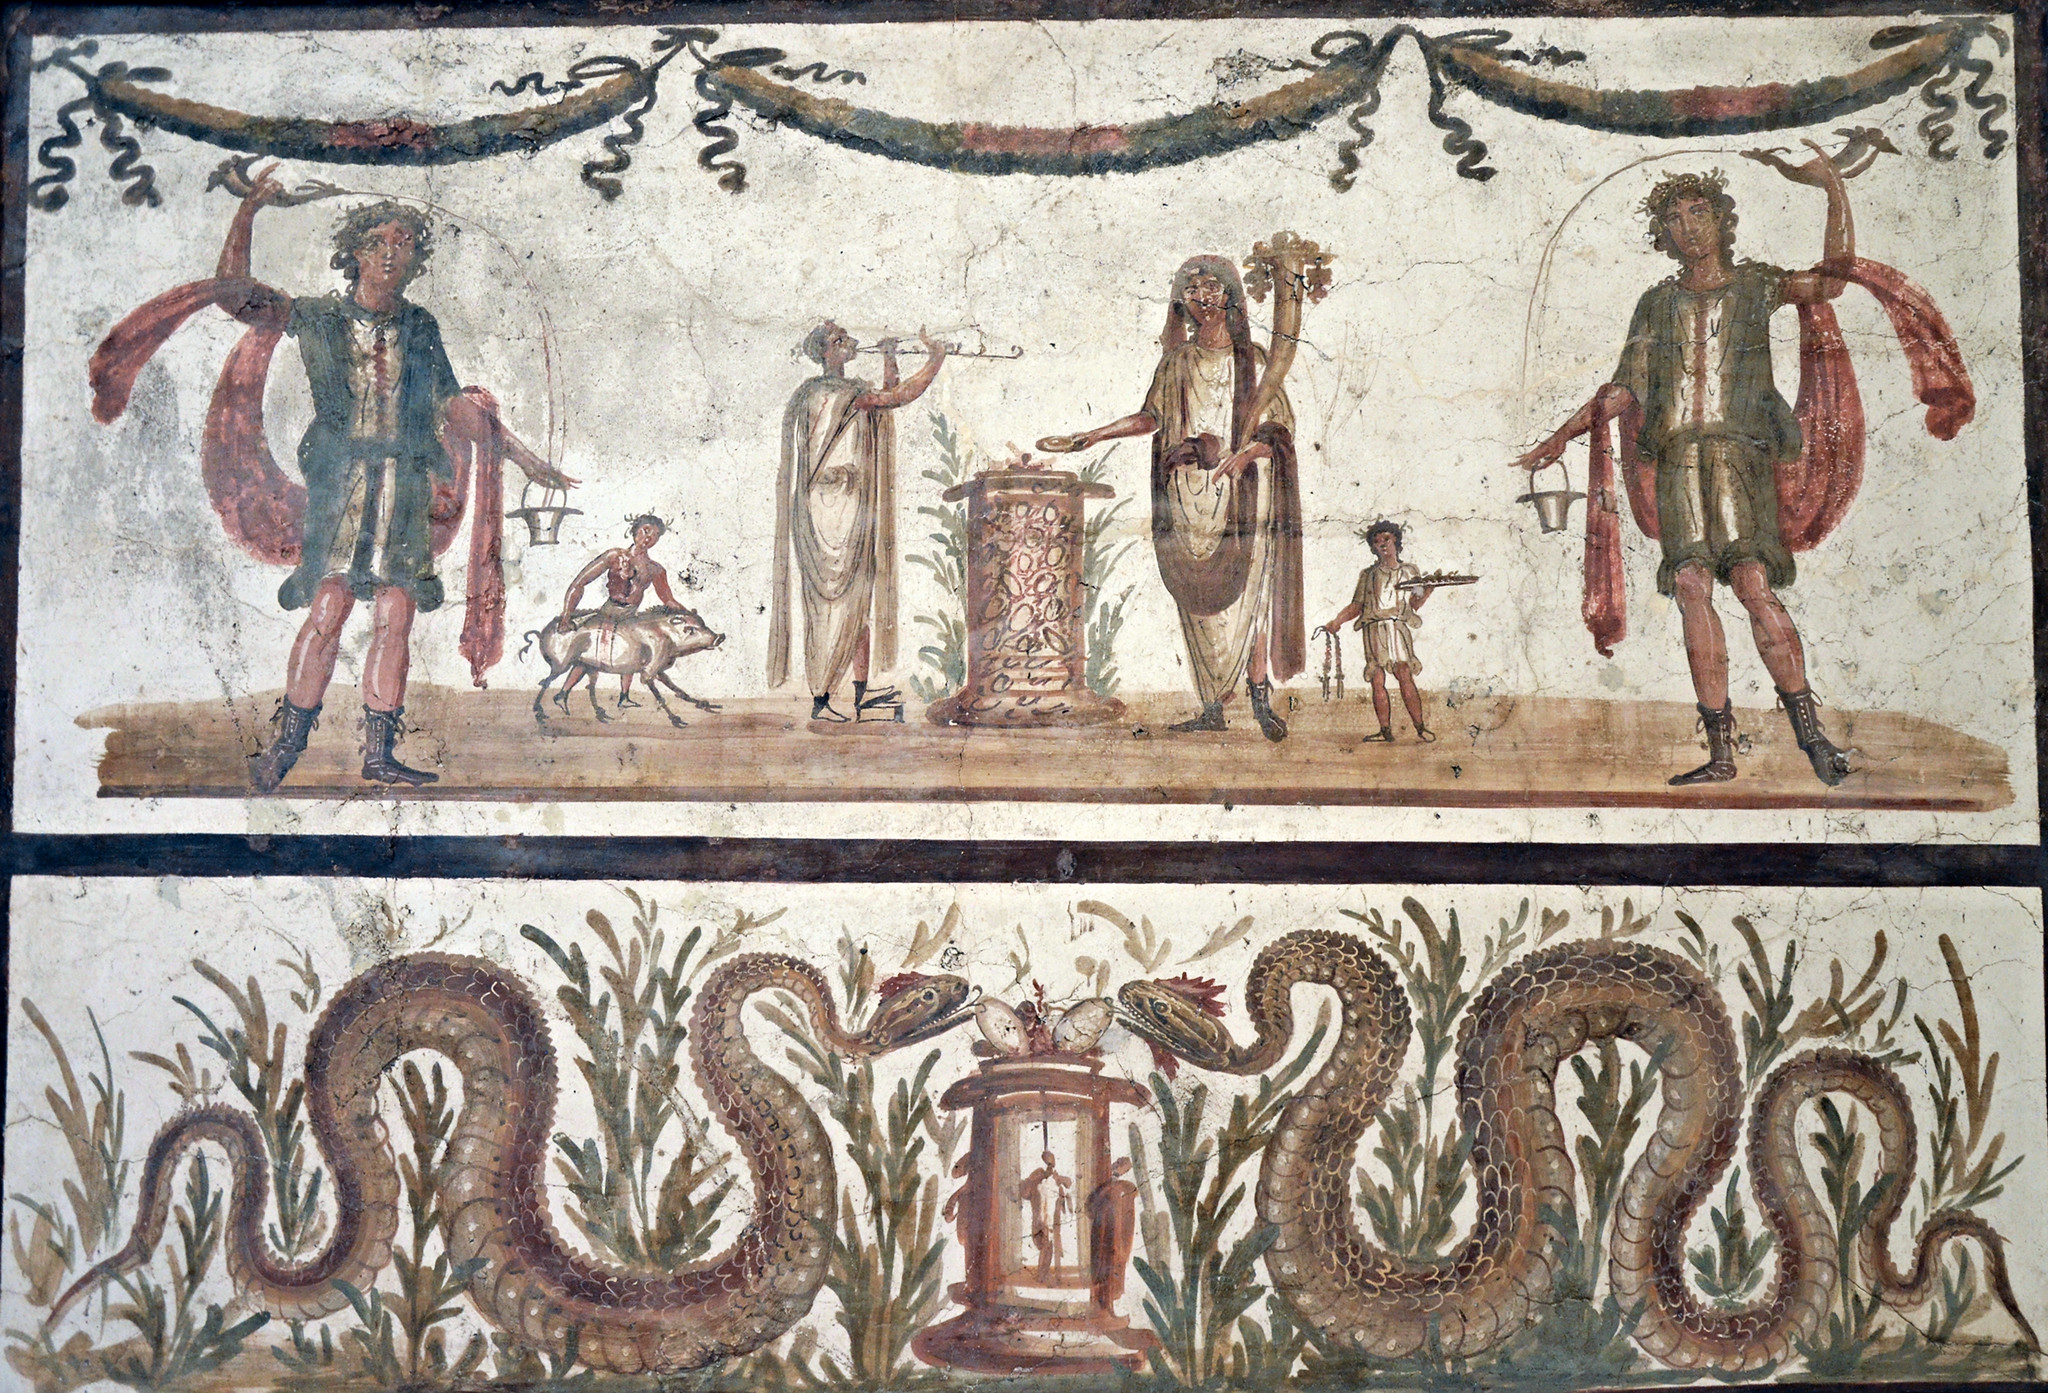 This fresco depicts the genius of the household providing an offering and sacrifice (the pig) to the lares (who are the larger figures on the left and right). Below, in a separate space, snakes (as genius loci) receive their own offering. ( Flickr courtesy of Tyler Bell )